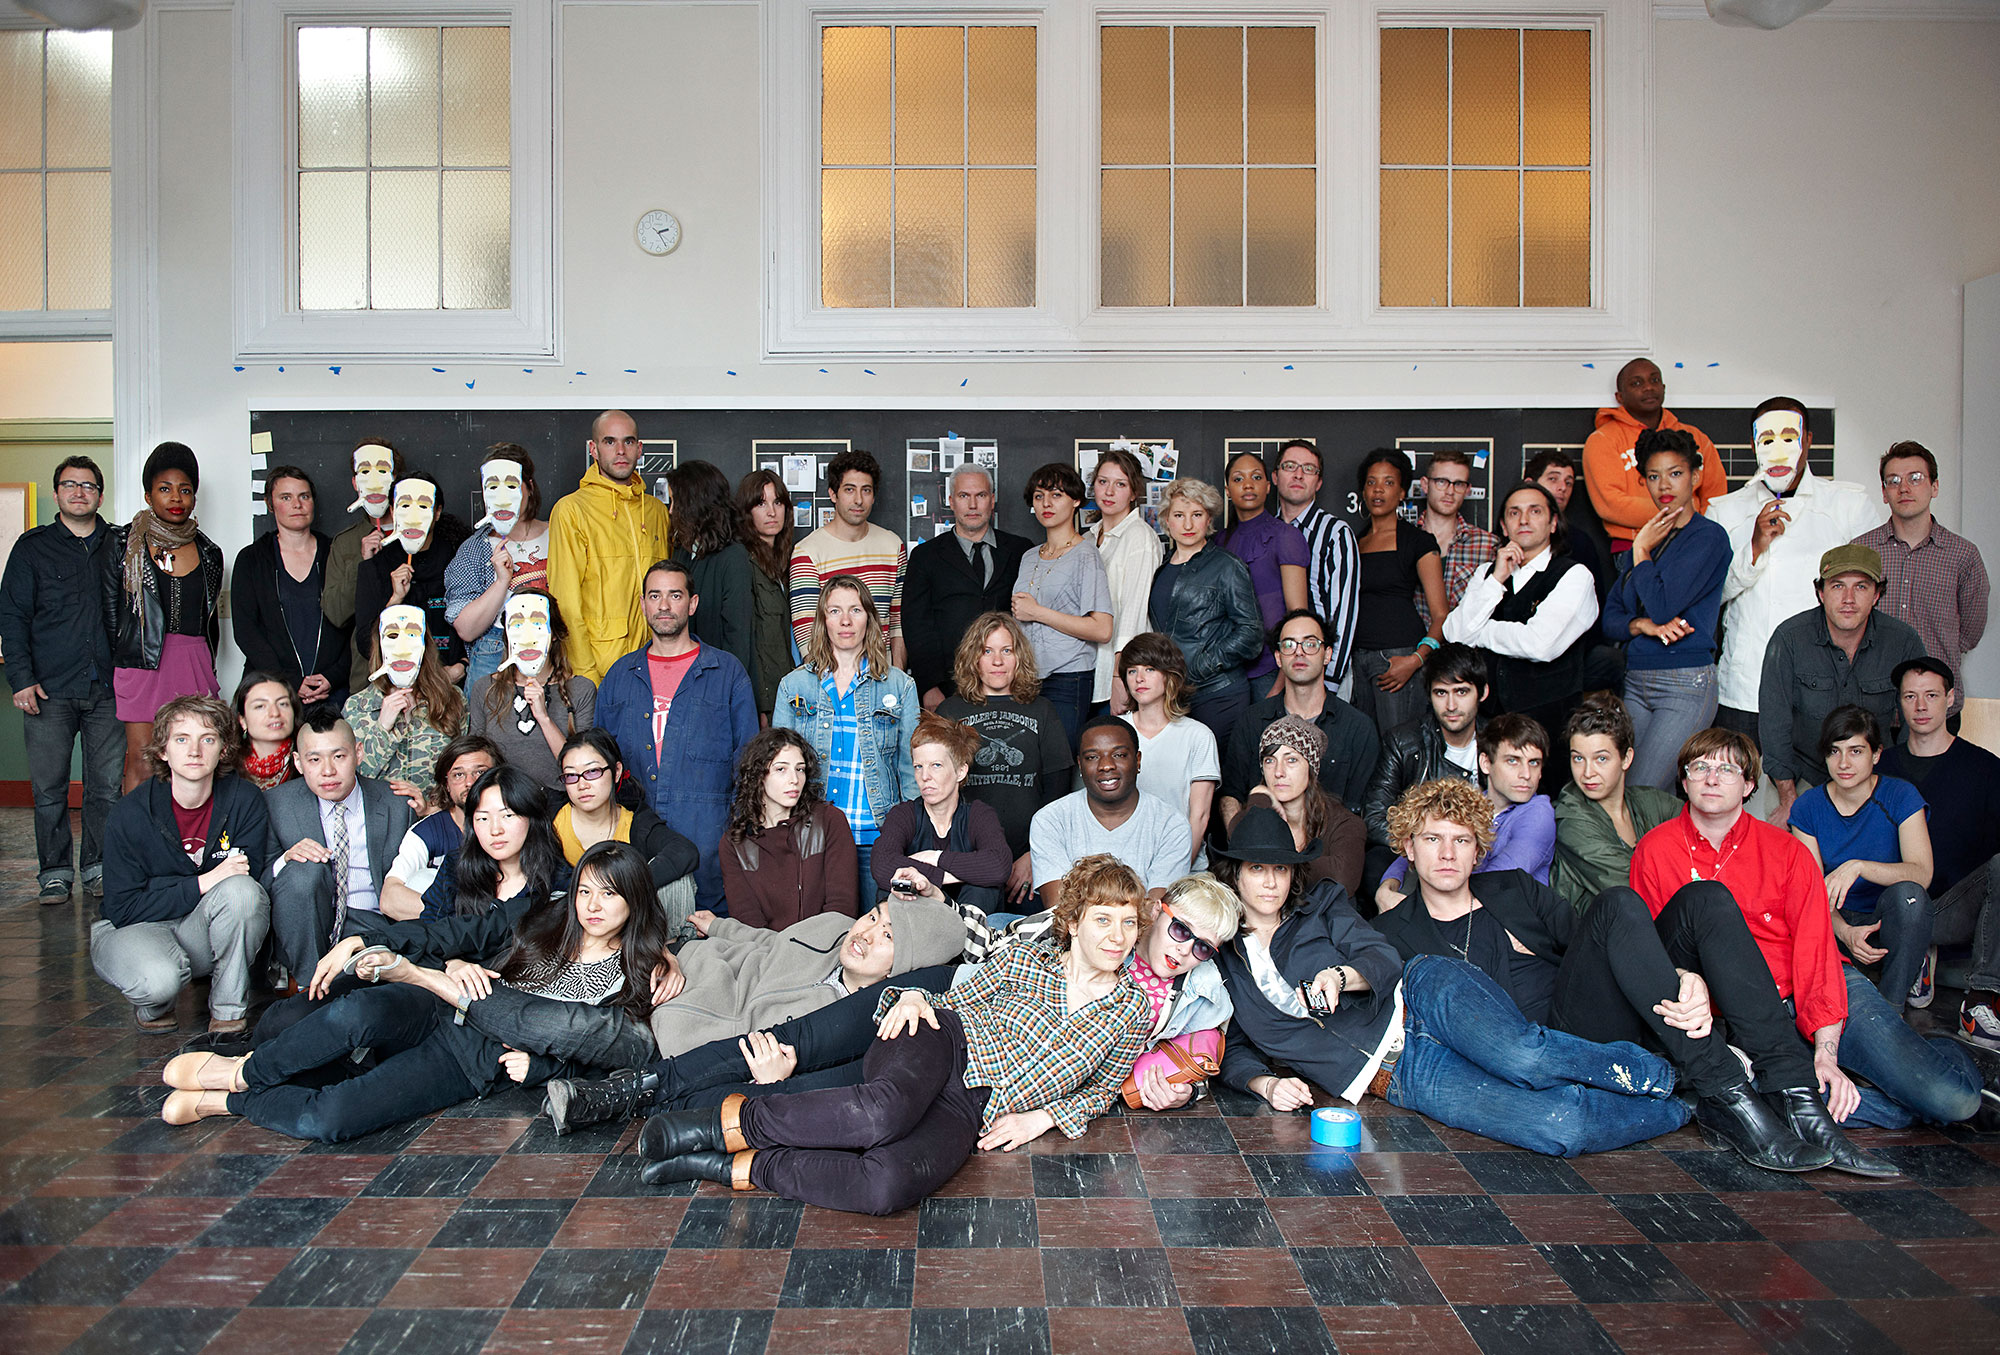 Group portrait of Greater New York artists at MoMA PS1, 2010